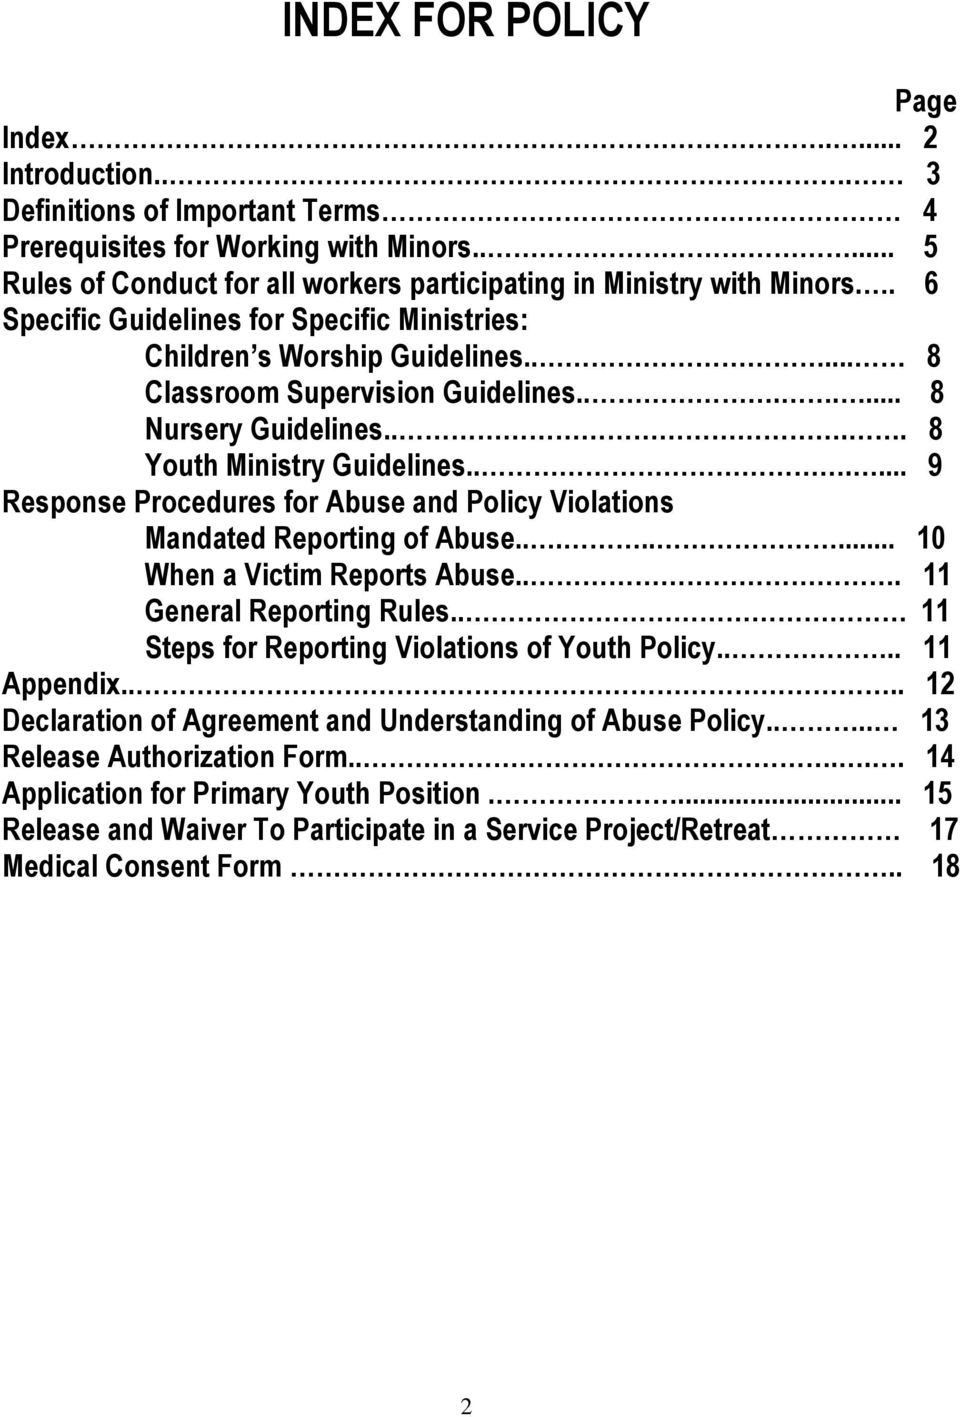 ..... 9 Response Procedures for Abuse and Policy Violations Mandated Reporting of Abuse........ 10 When a Victim Reports Abuse... 11 General Reporting Rules.